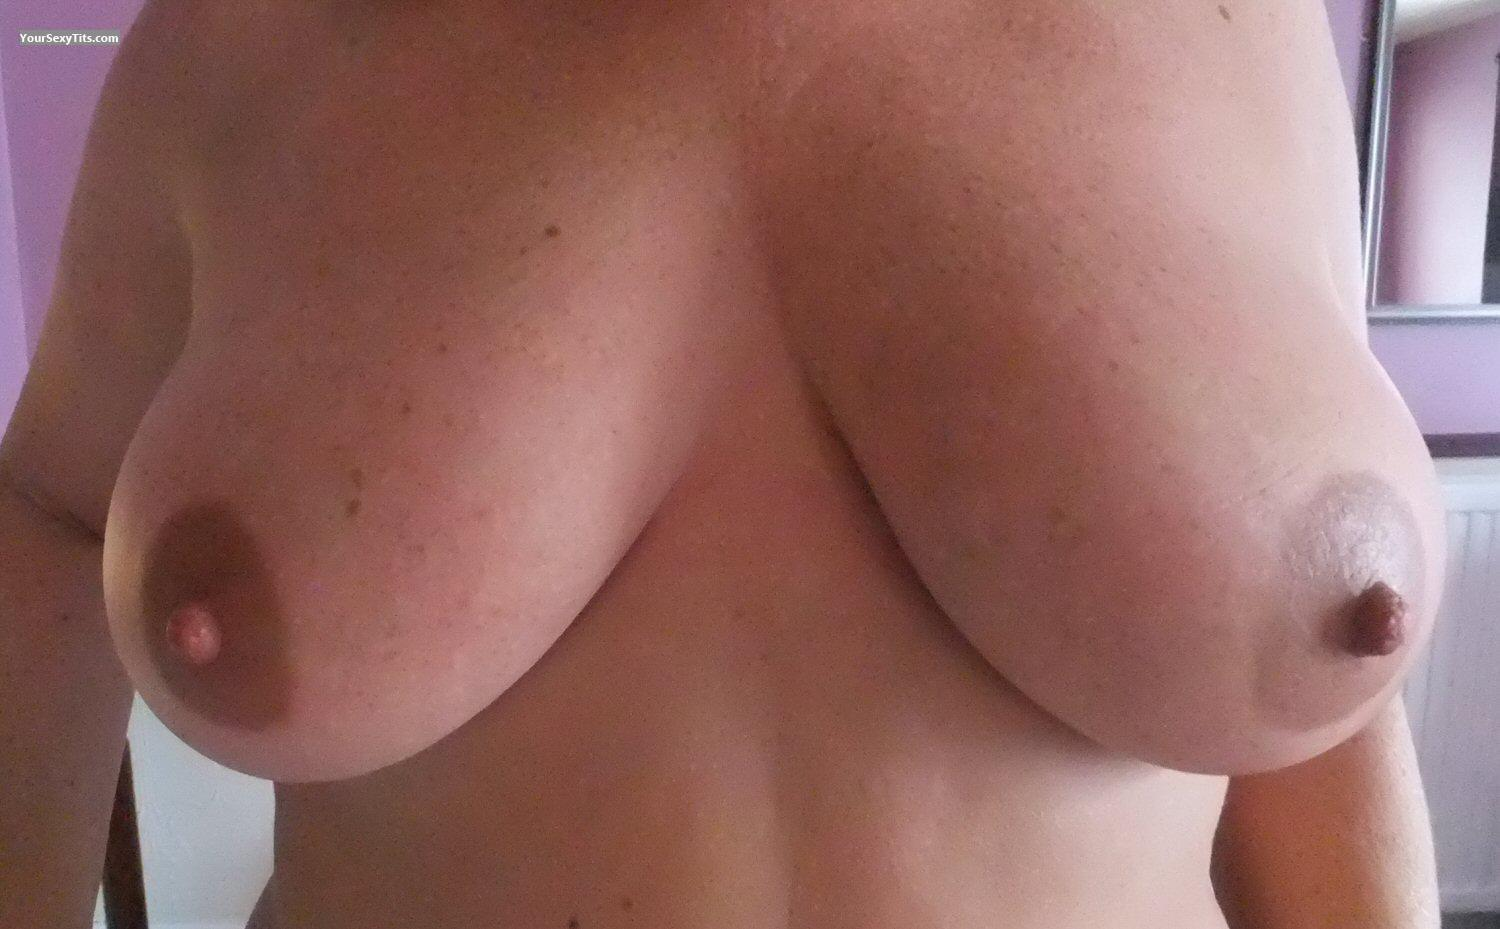 Tit Flash: Girlfriend's Very Big Tits - B And H from United Kingdom